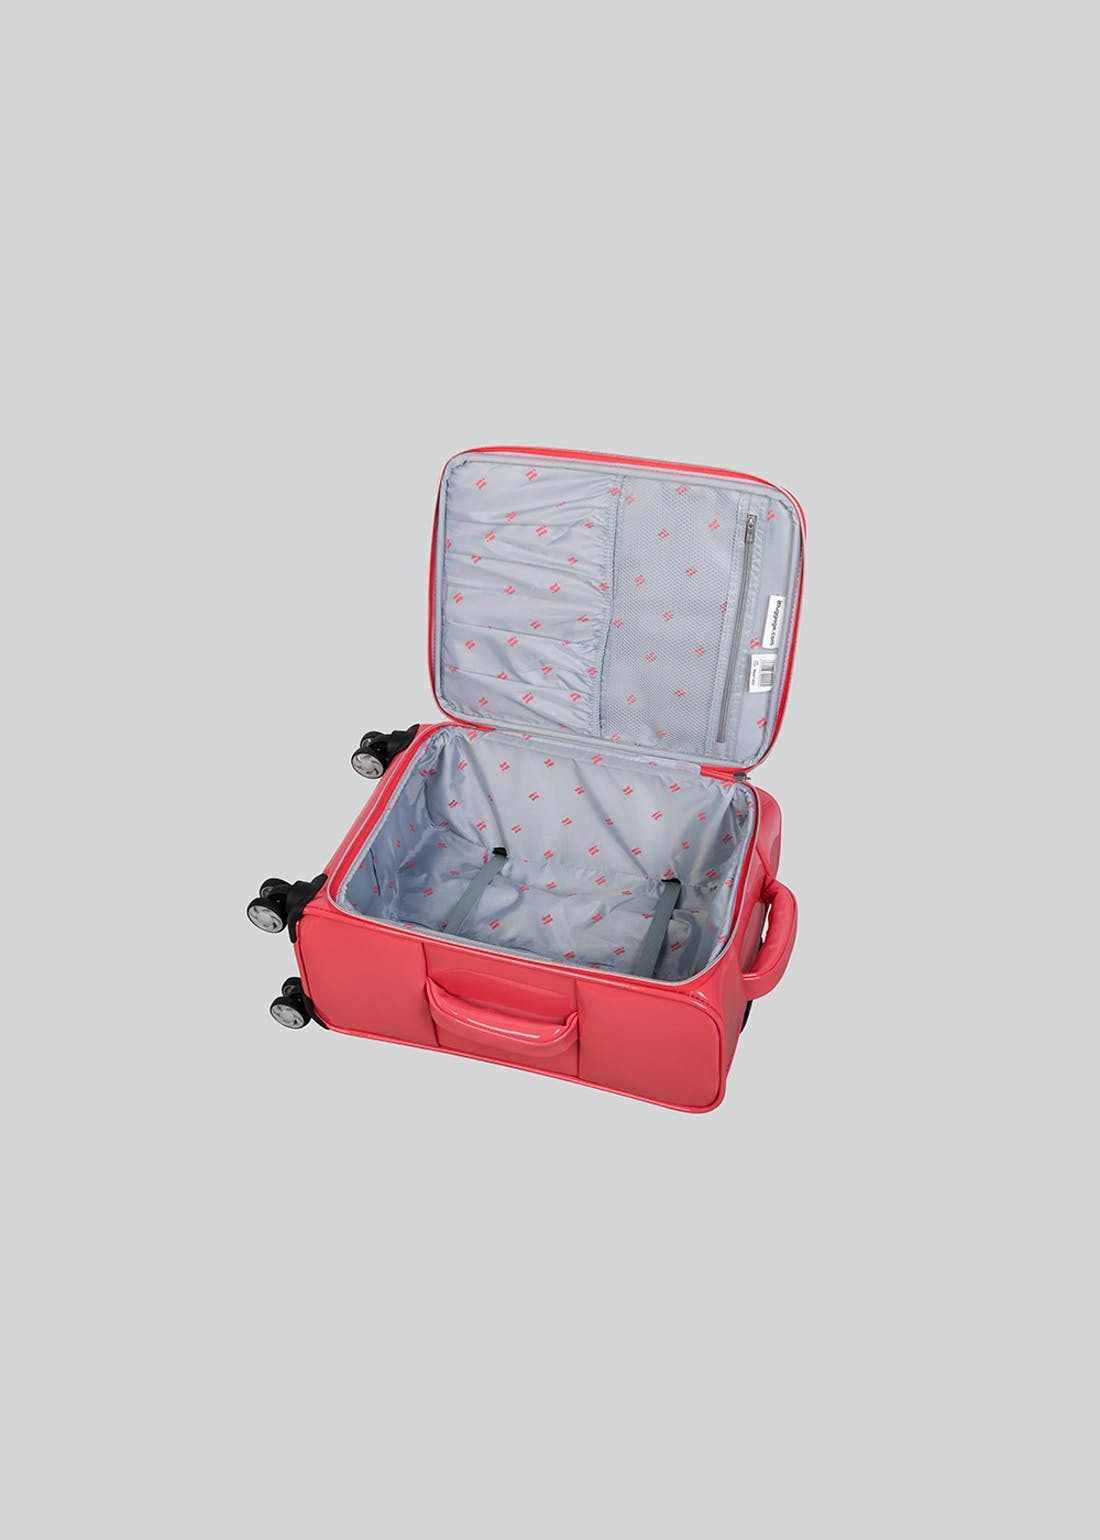 IT Luggage Duet Patent Cabin Suitcase